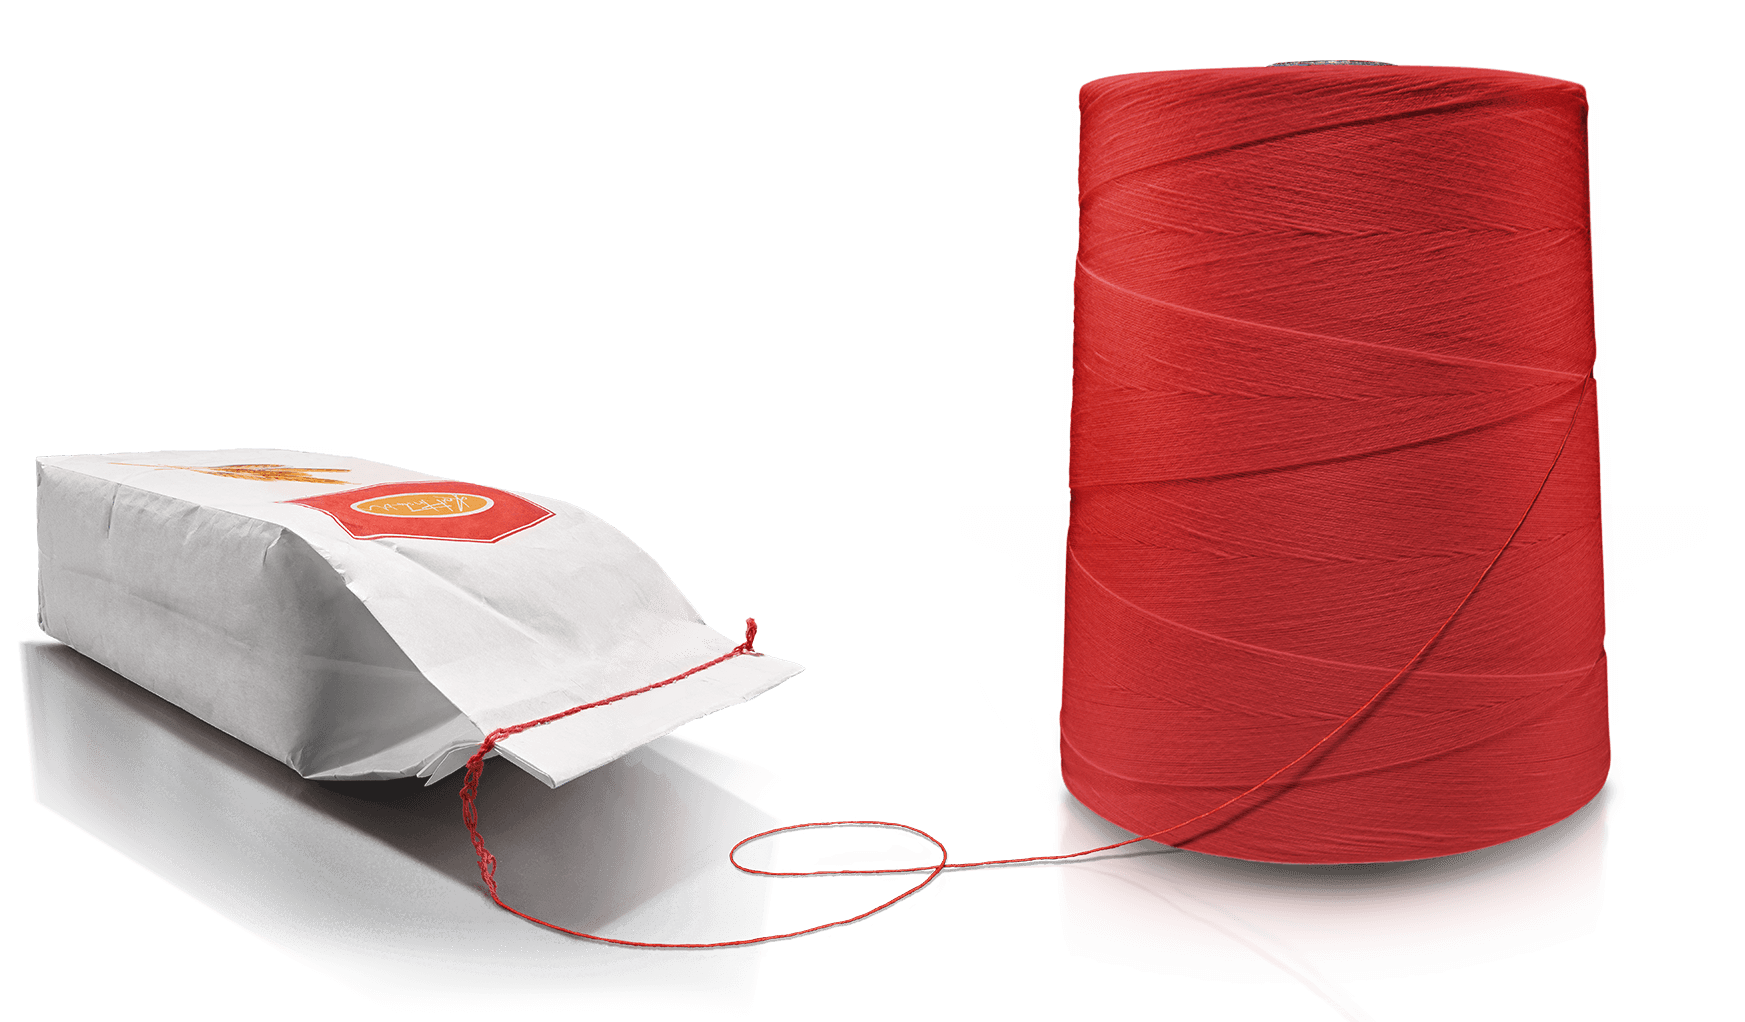 Food packaging with thread from Zwirnerei Wutach.